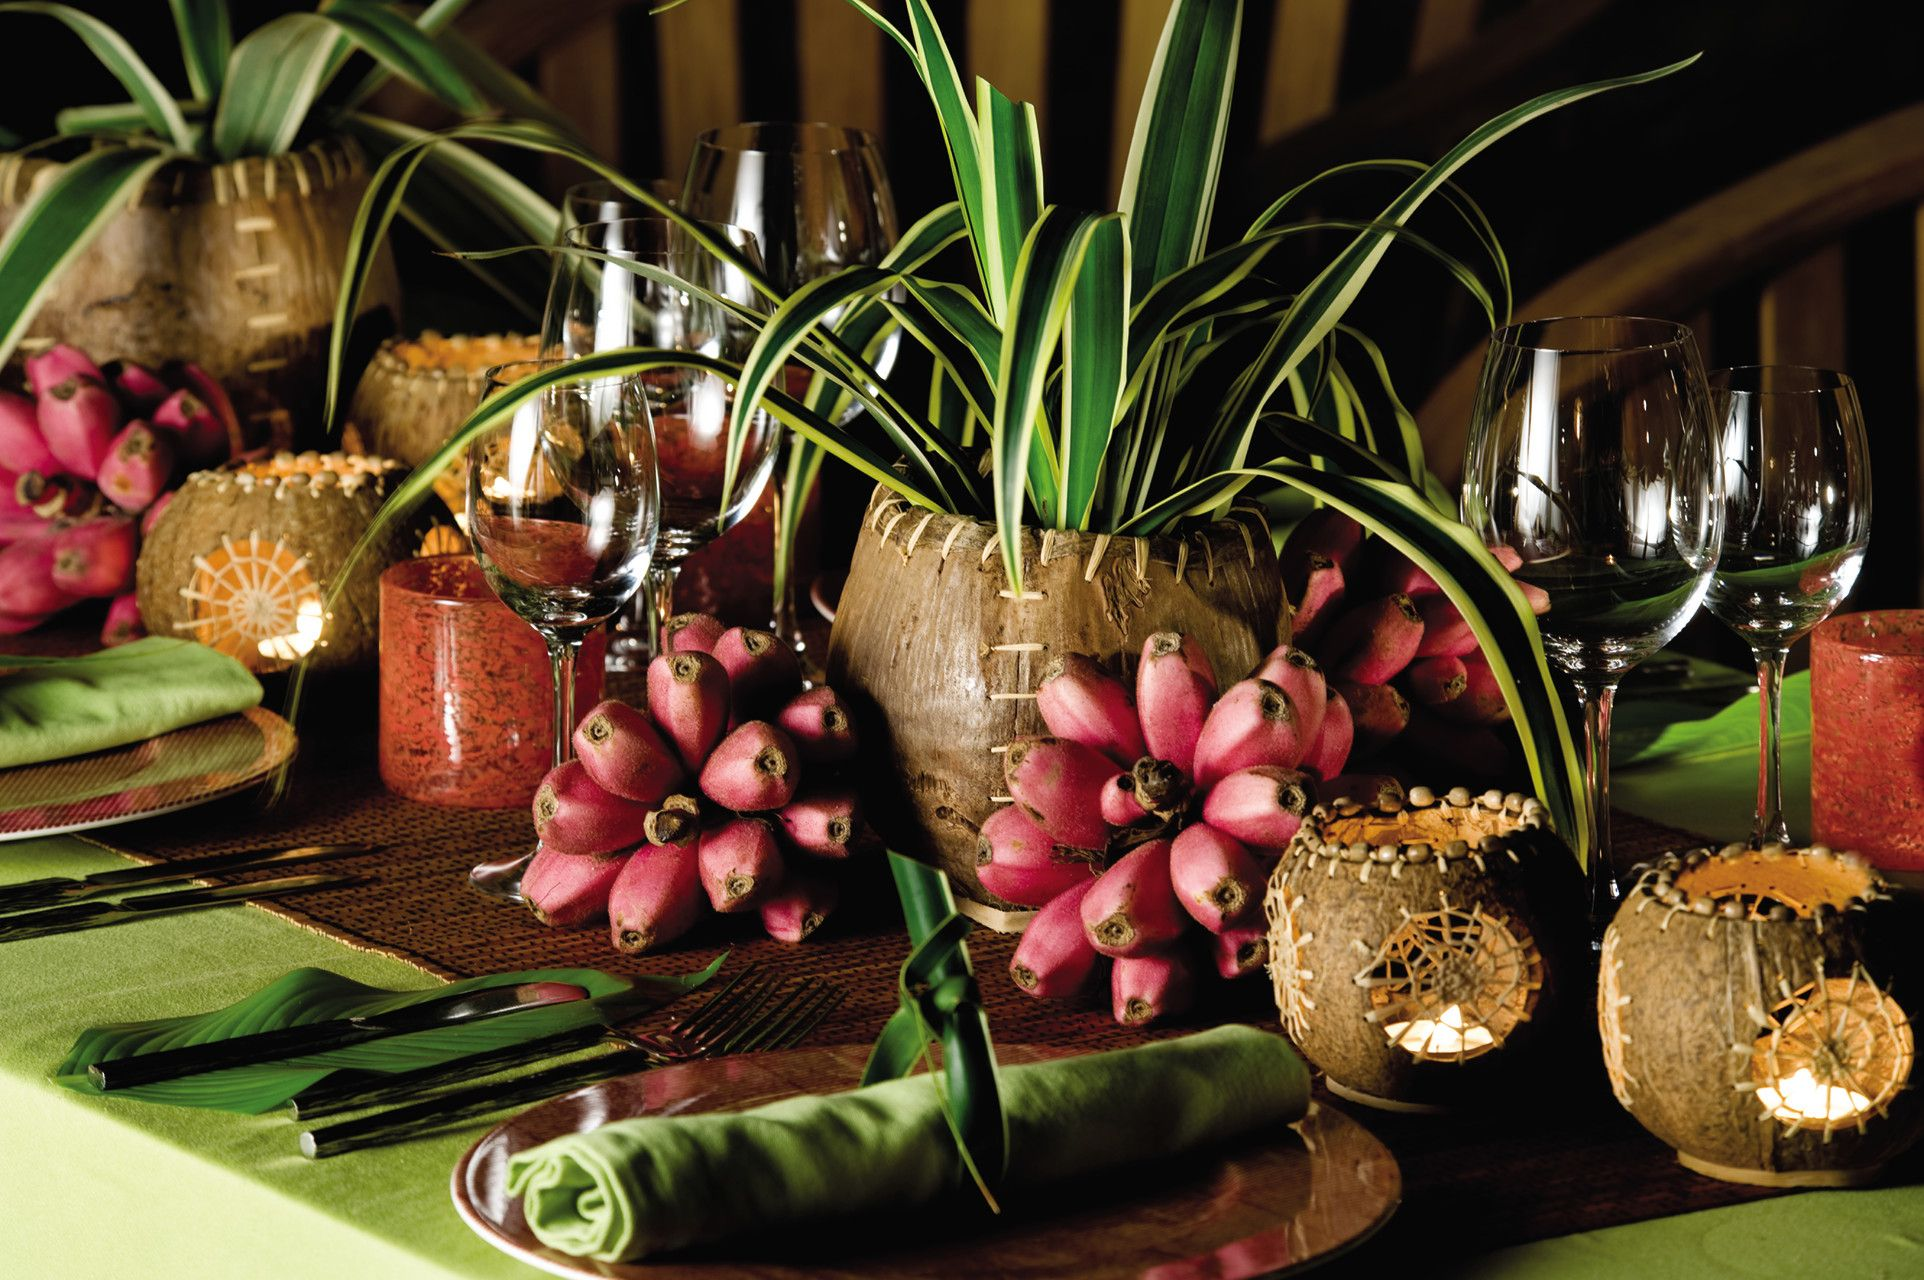 natural table decoration for a wedding or event at foumba (creole